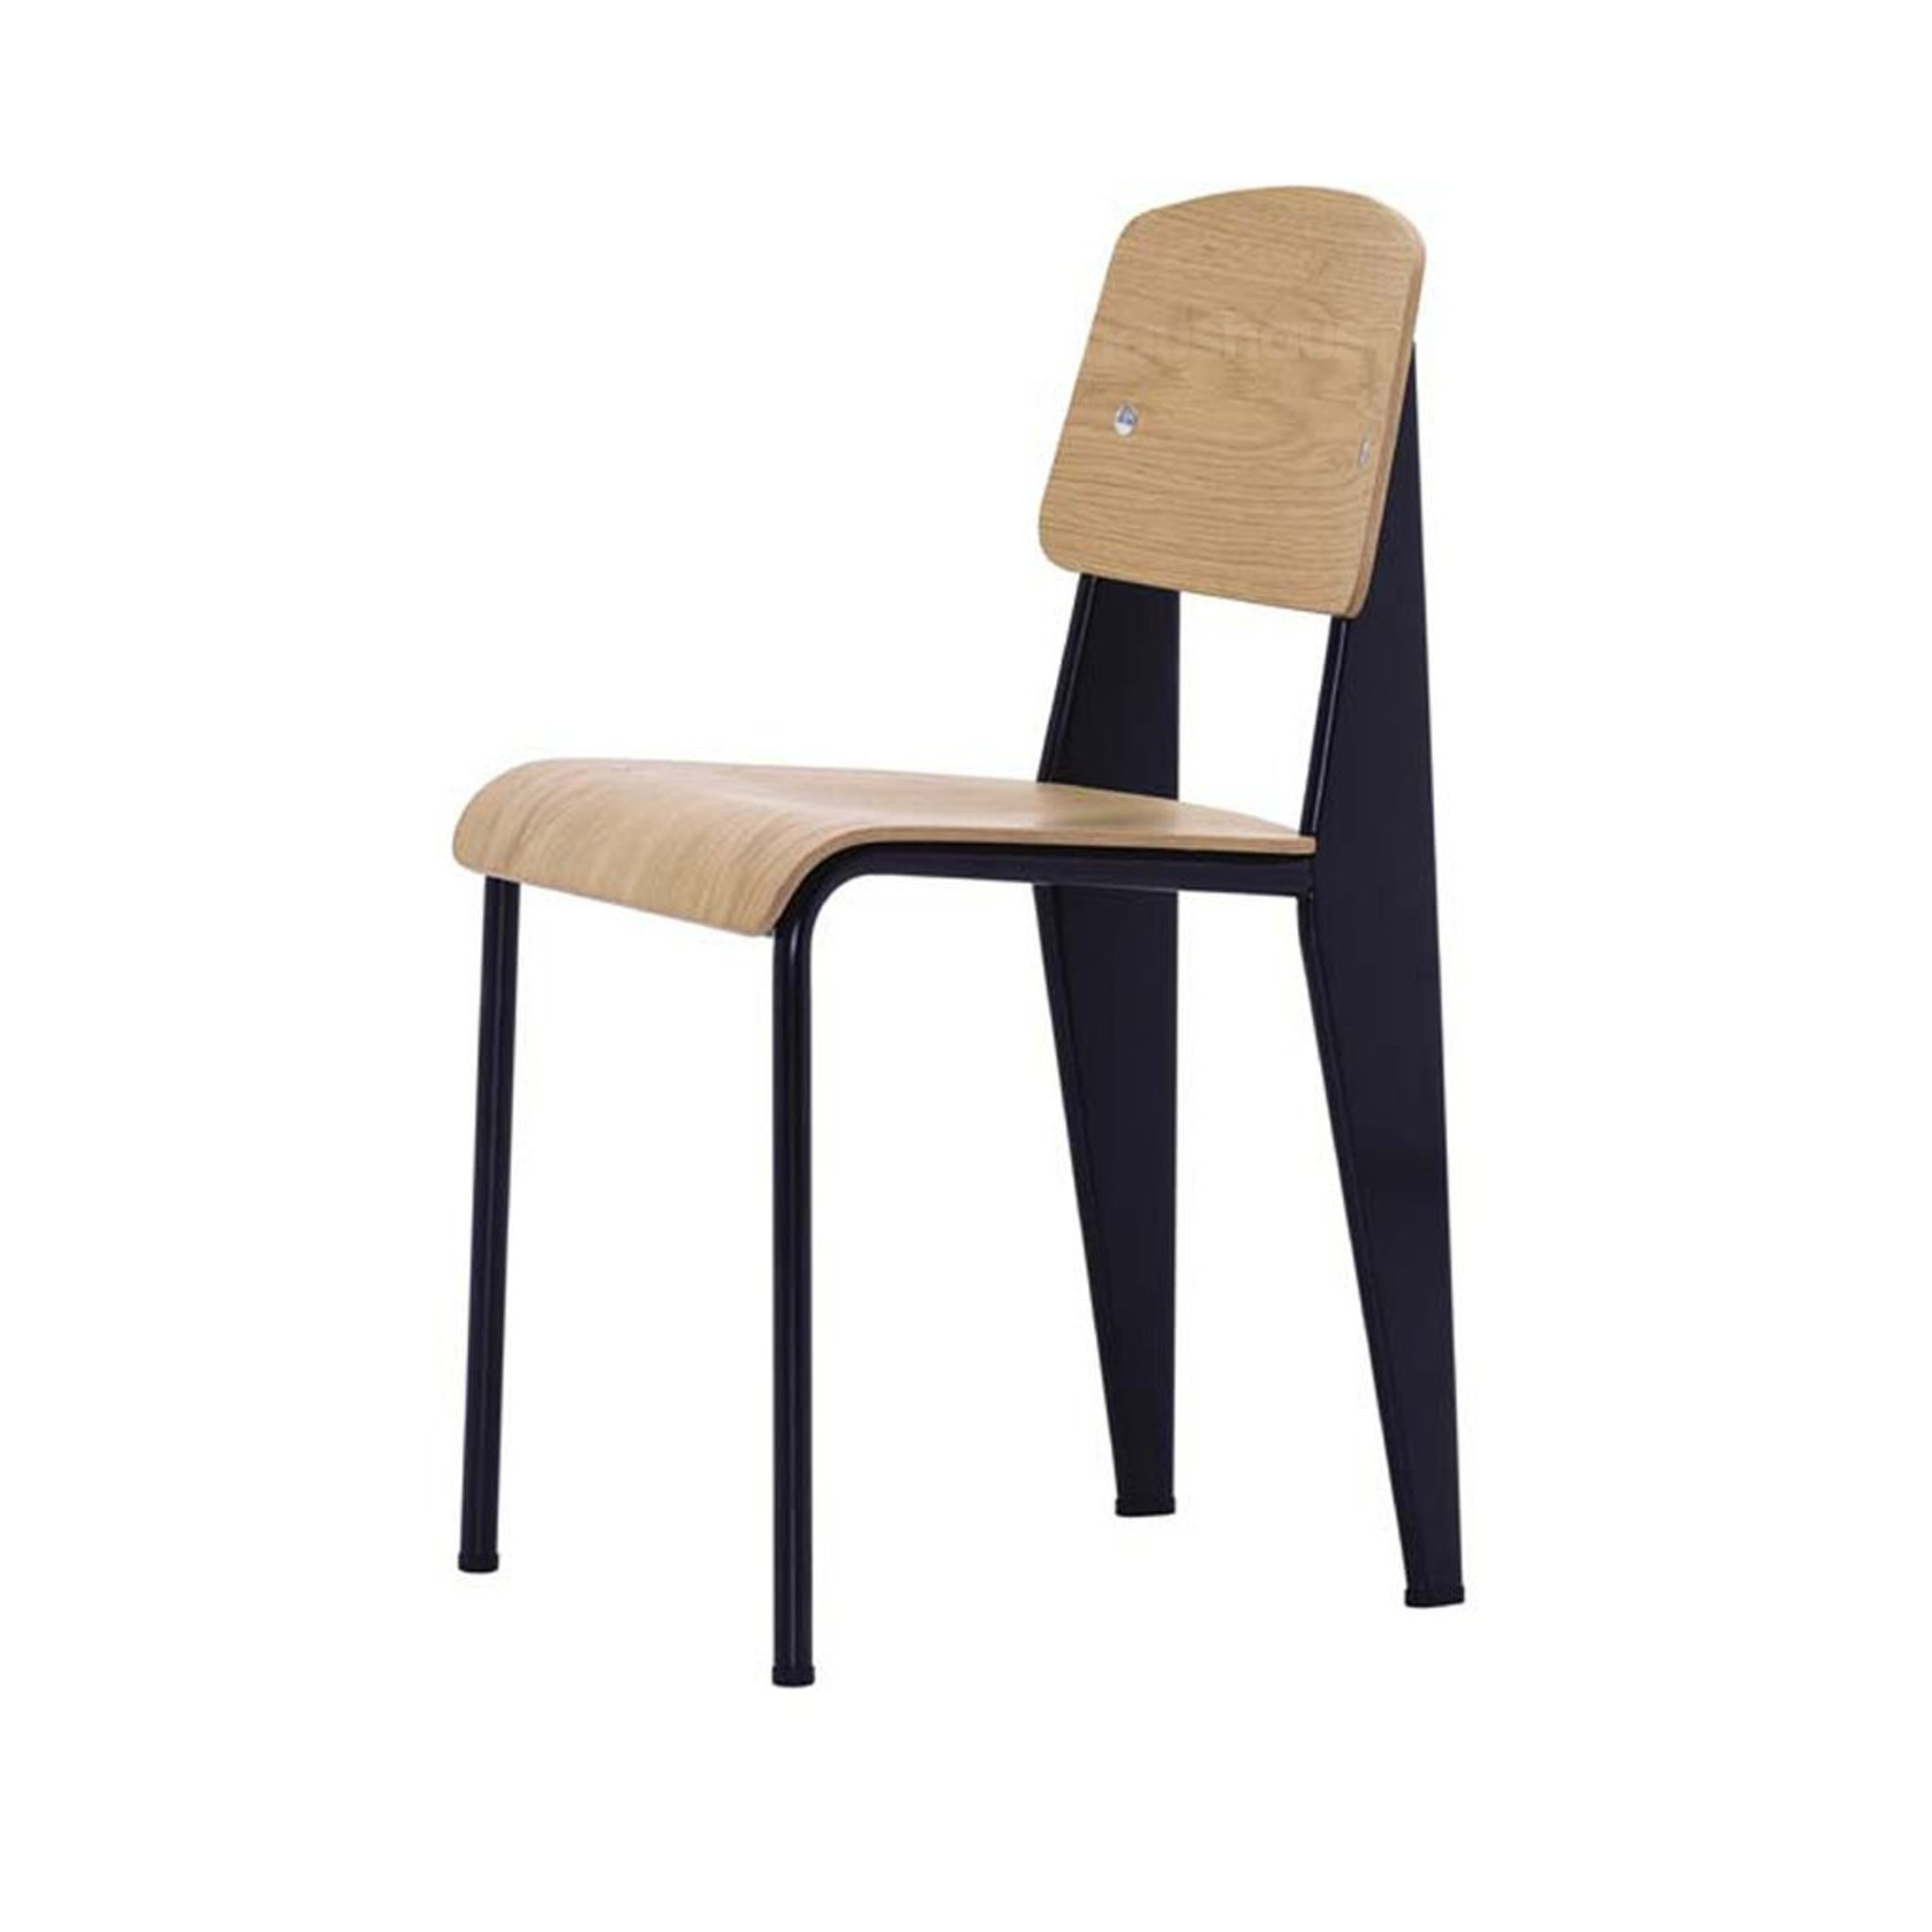 Standard chair by Jean Prouve, Vitra